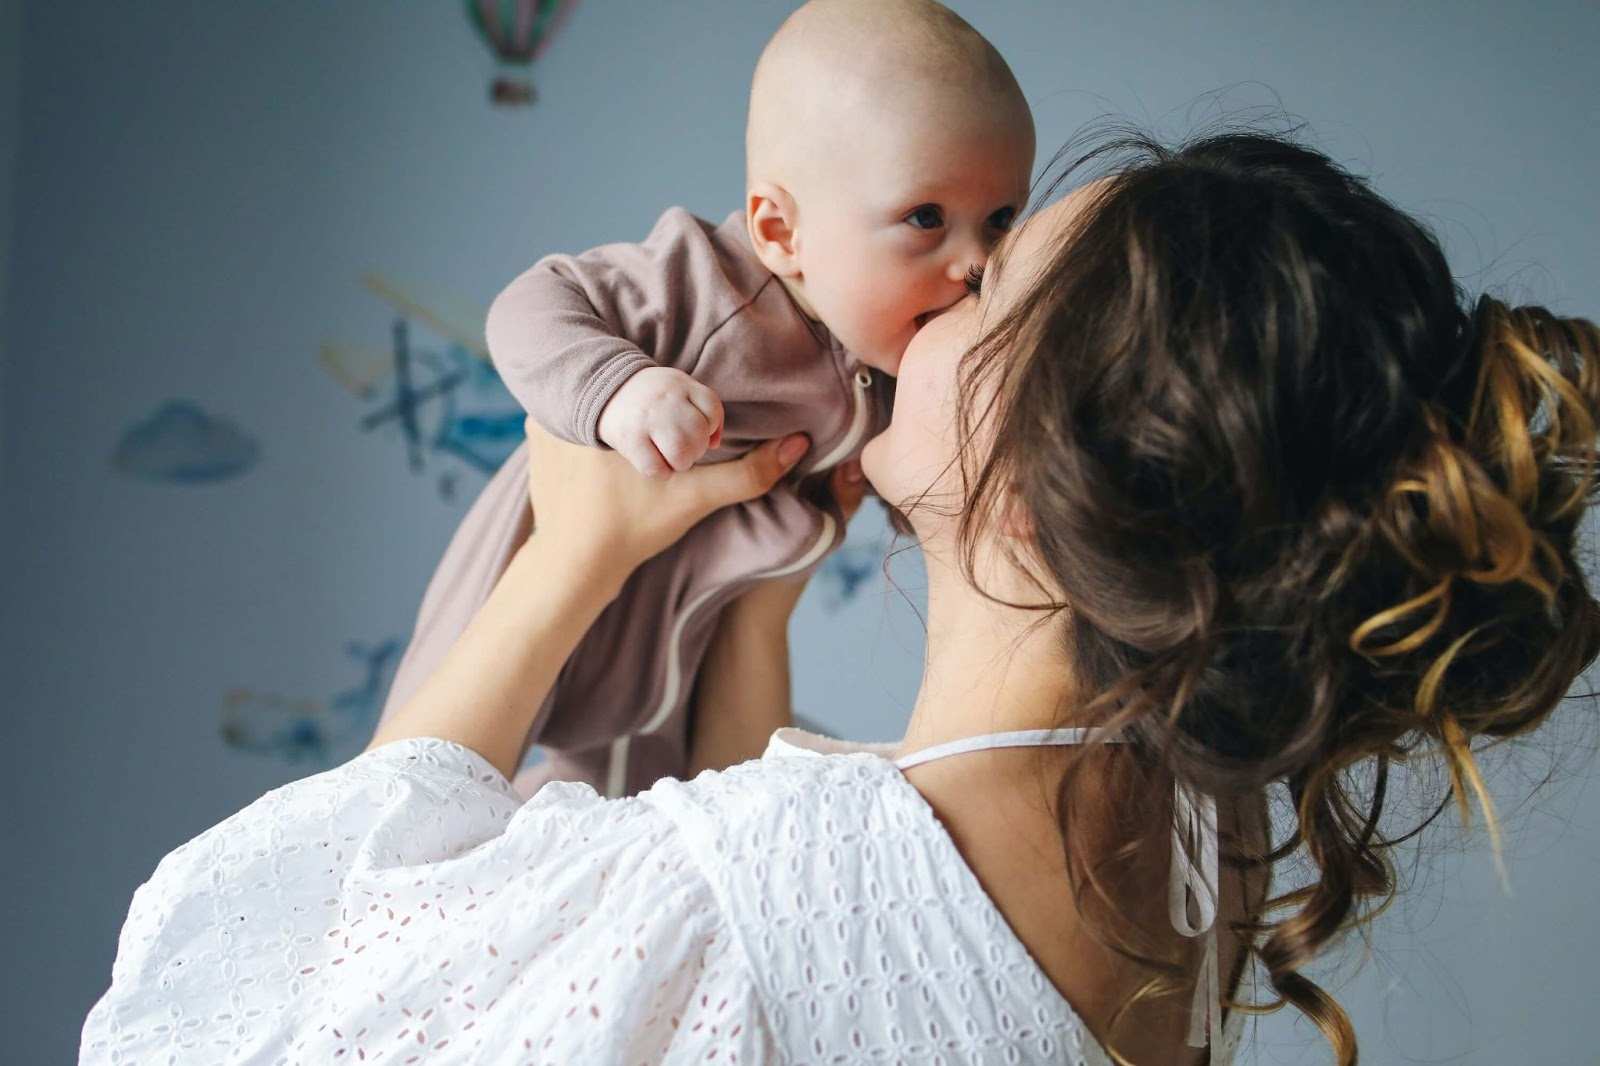 A young mother embraces her healthy baby